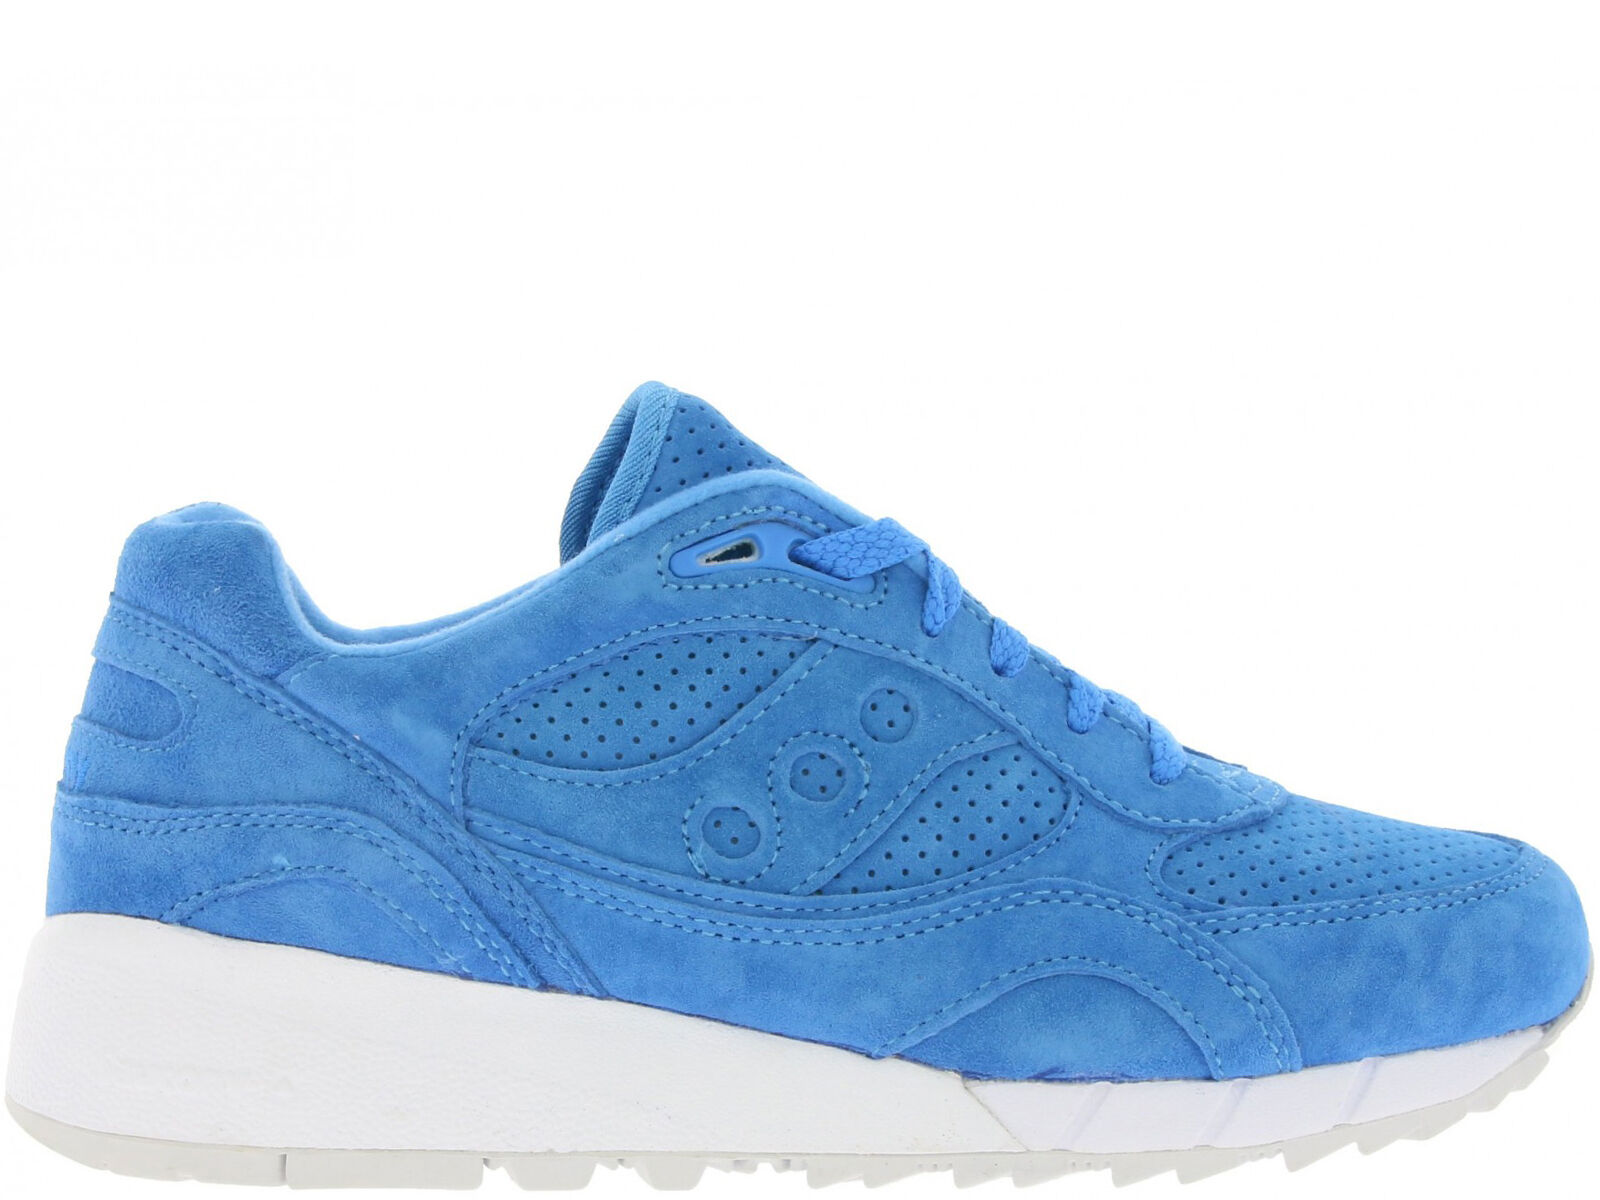 Brand New Saucony Shadow 6000 Homme Athletic Fashion Sneakers [S70222-4]